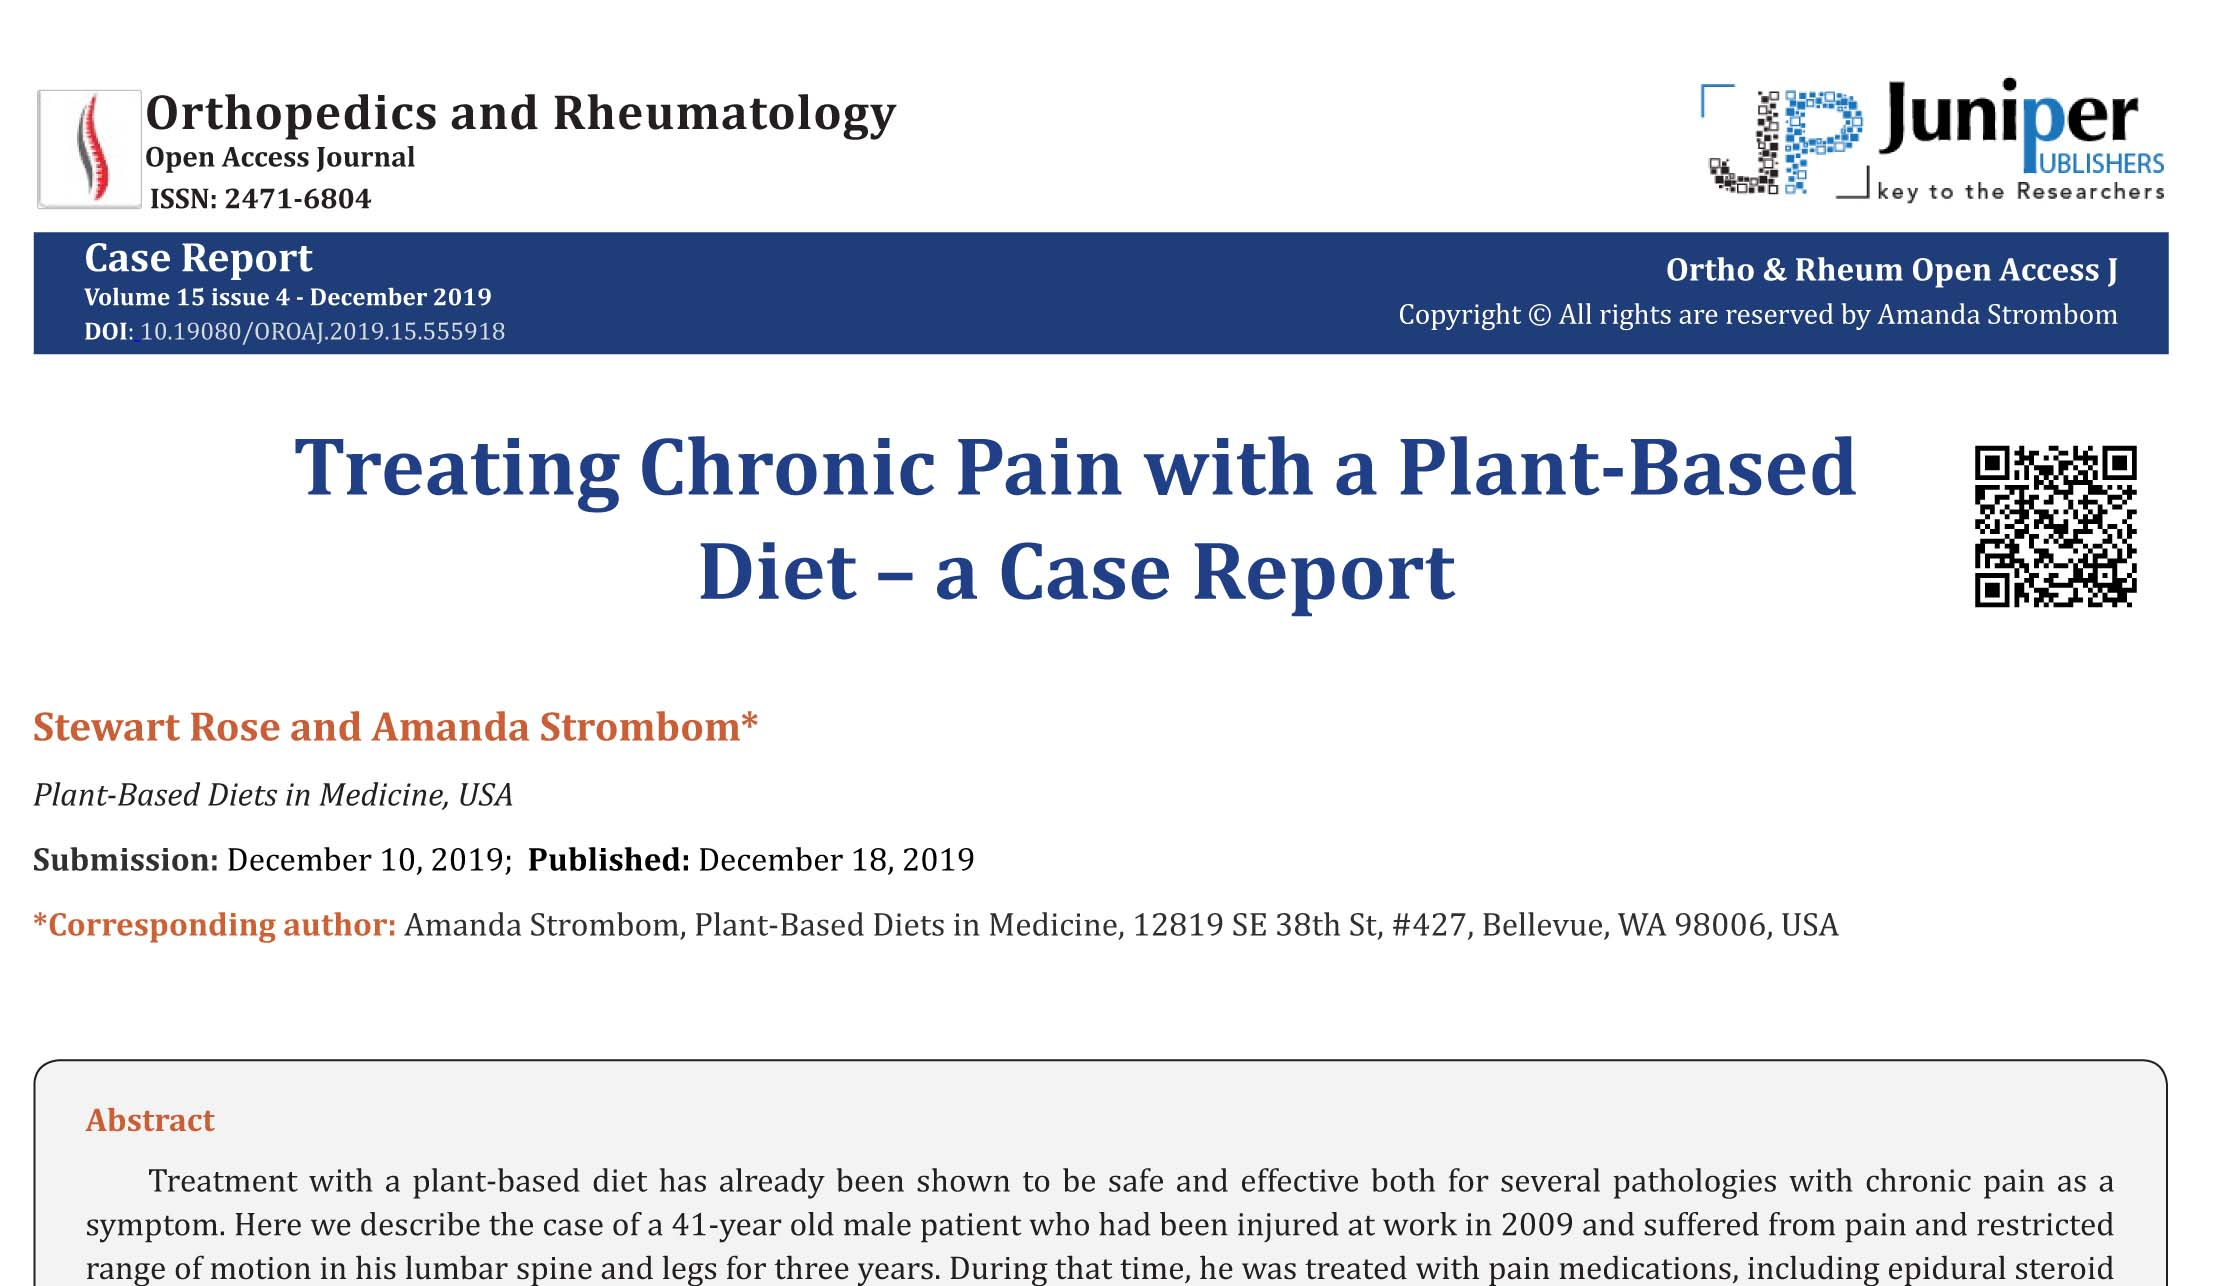 Treating Chronic Pain with a Plant-Based Diet – a Case Report